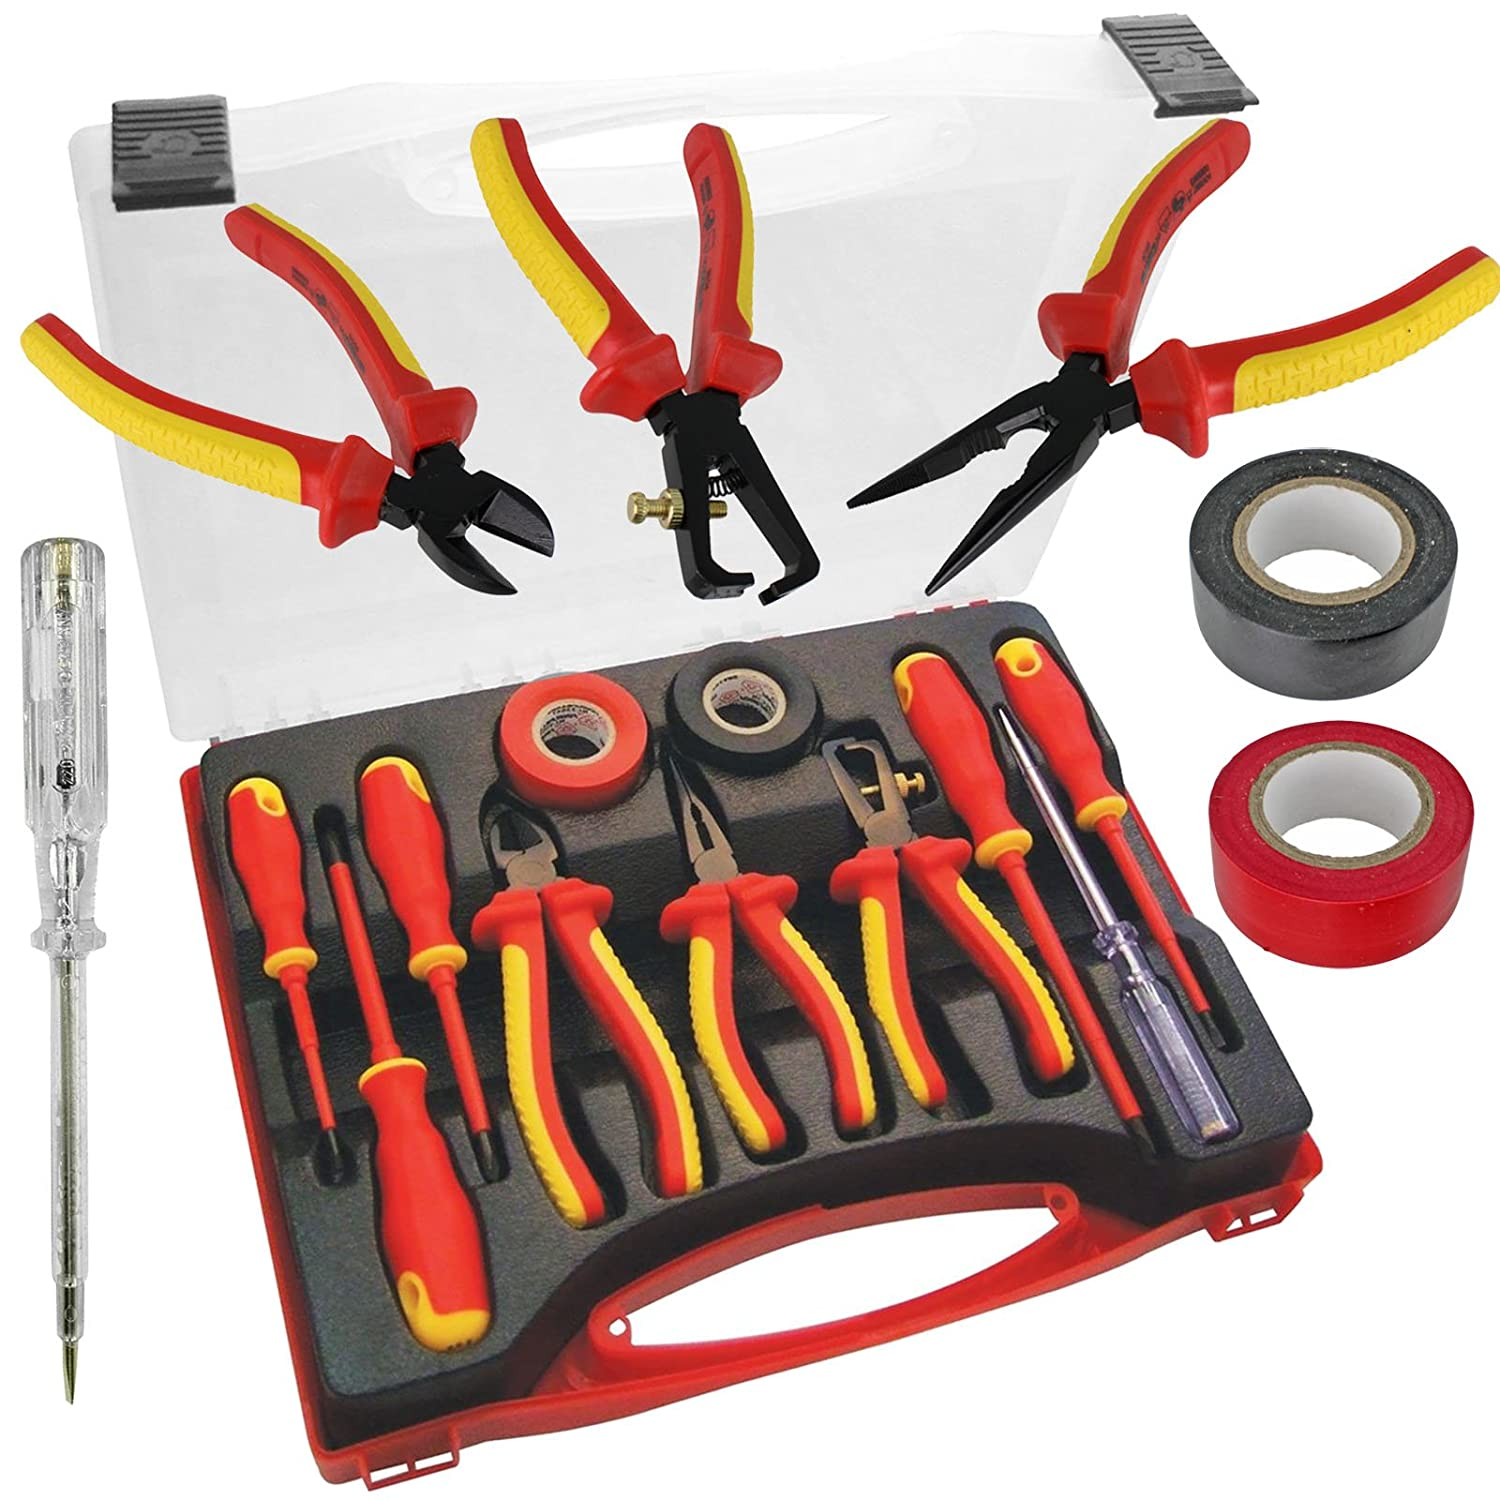 Spares2go Complete Electricians Insulated Screwdriver & Plier Tool Set